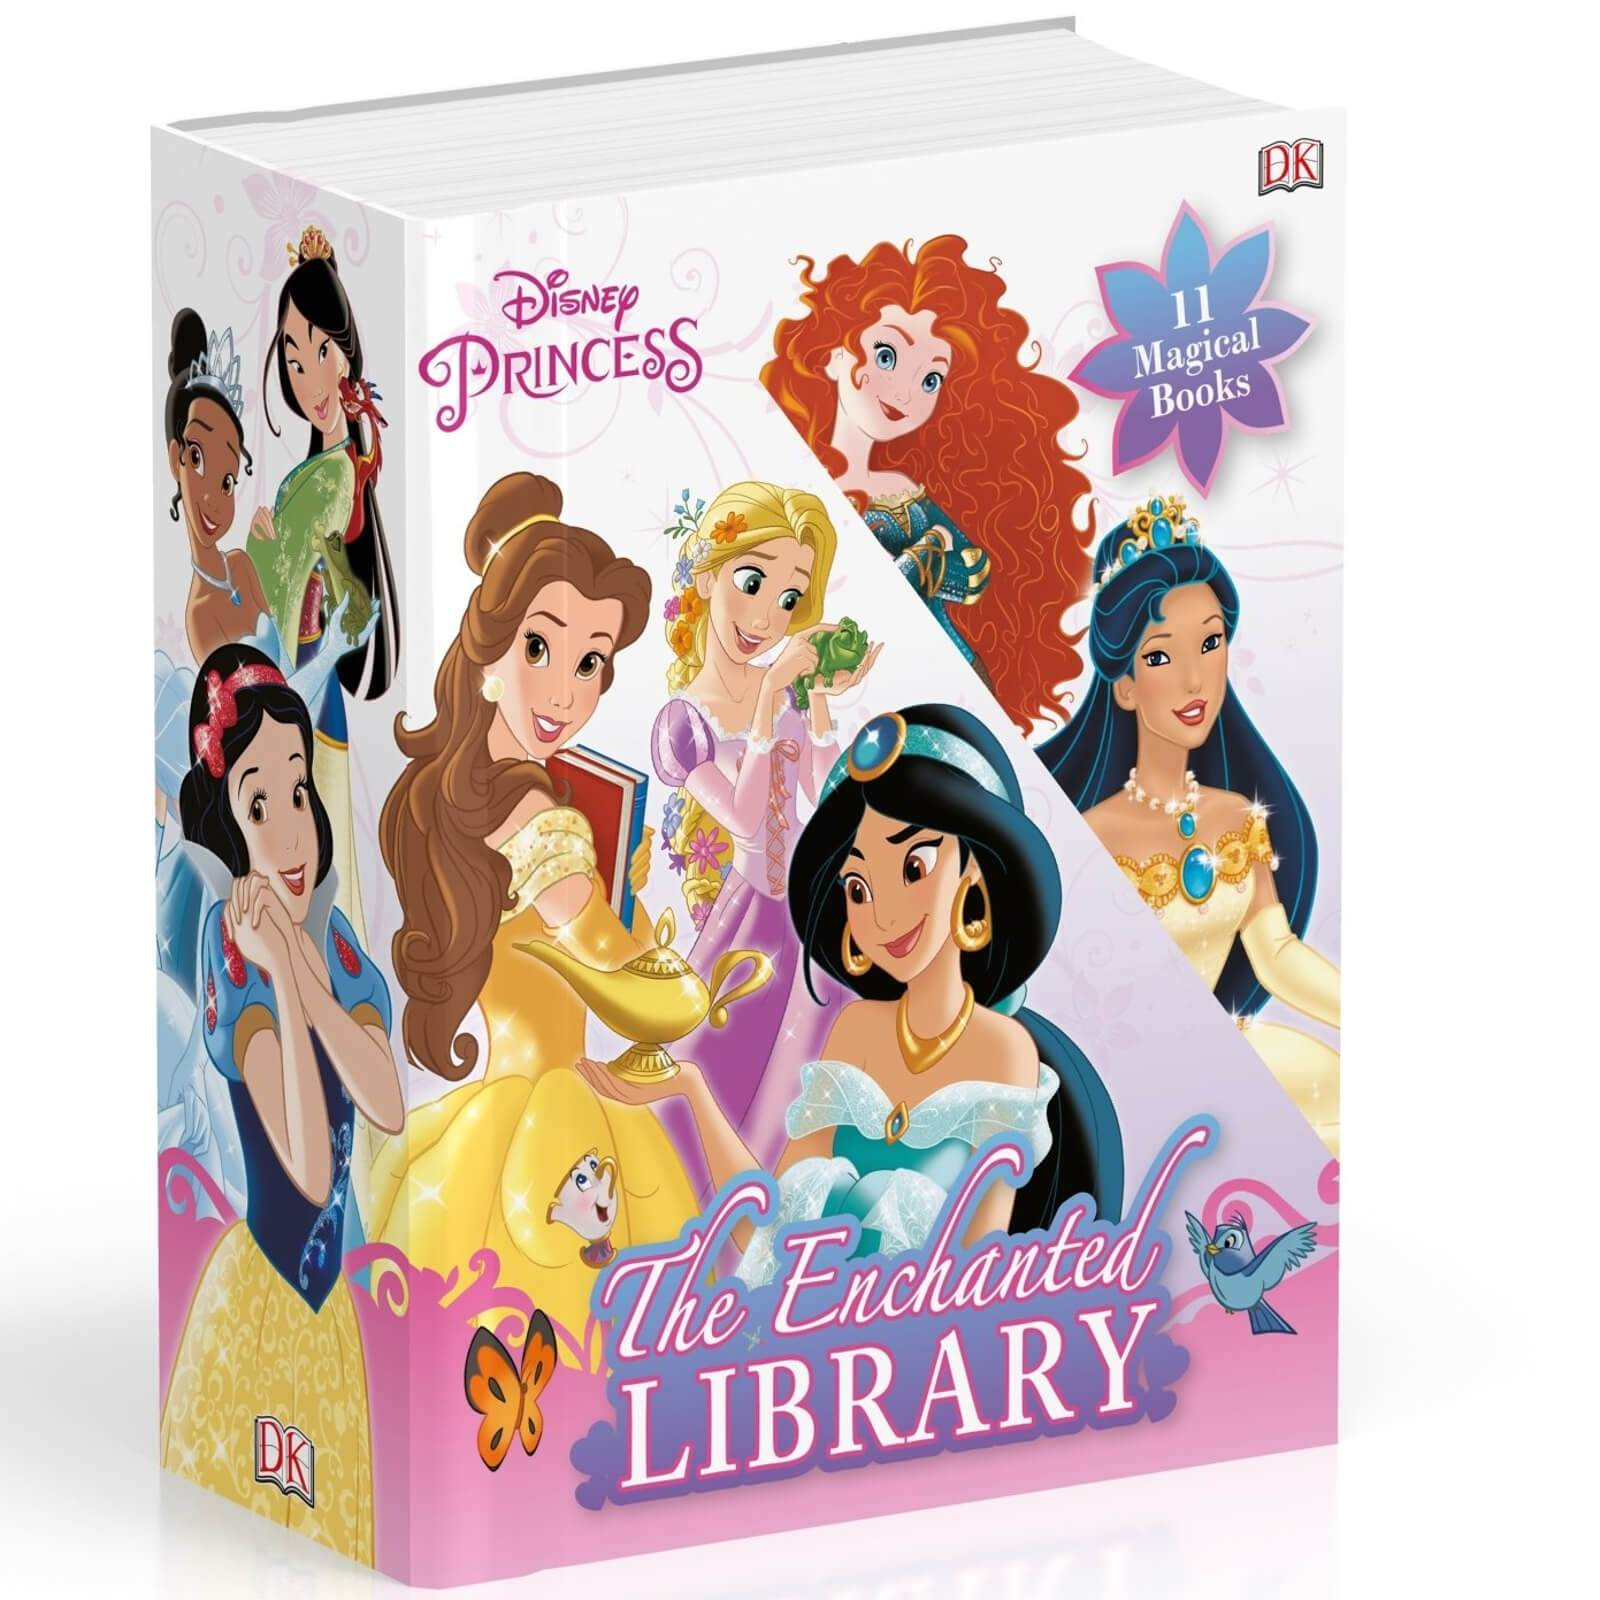 DK Publishing Disney Princess The Enchanted Library 11 Book Collection (Slipcase)